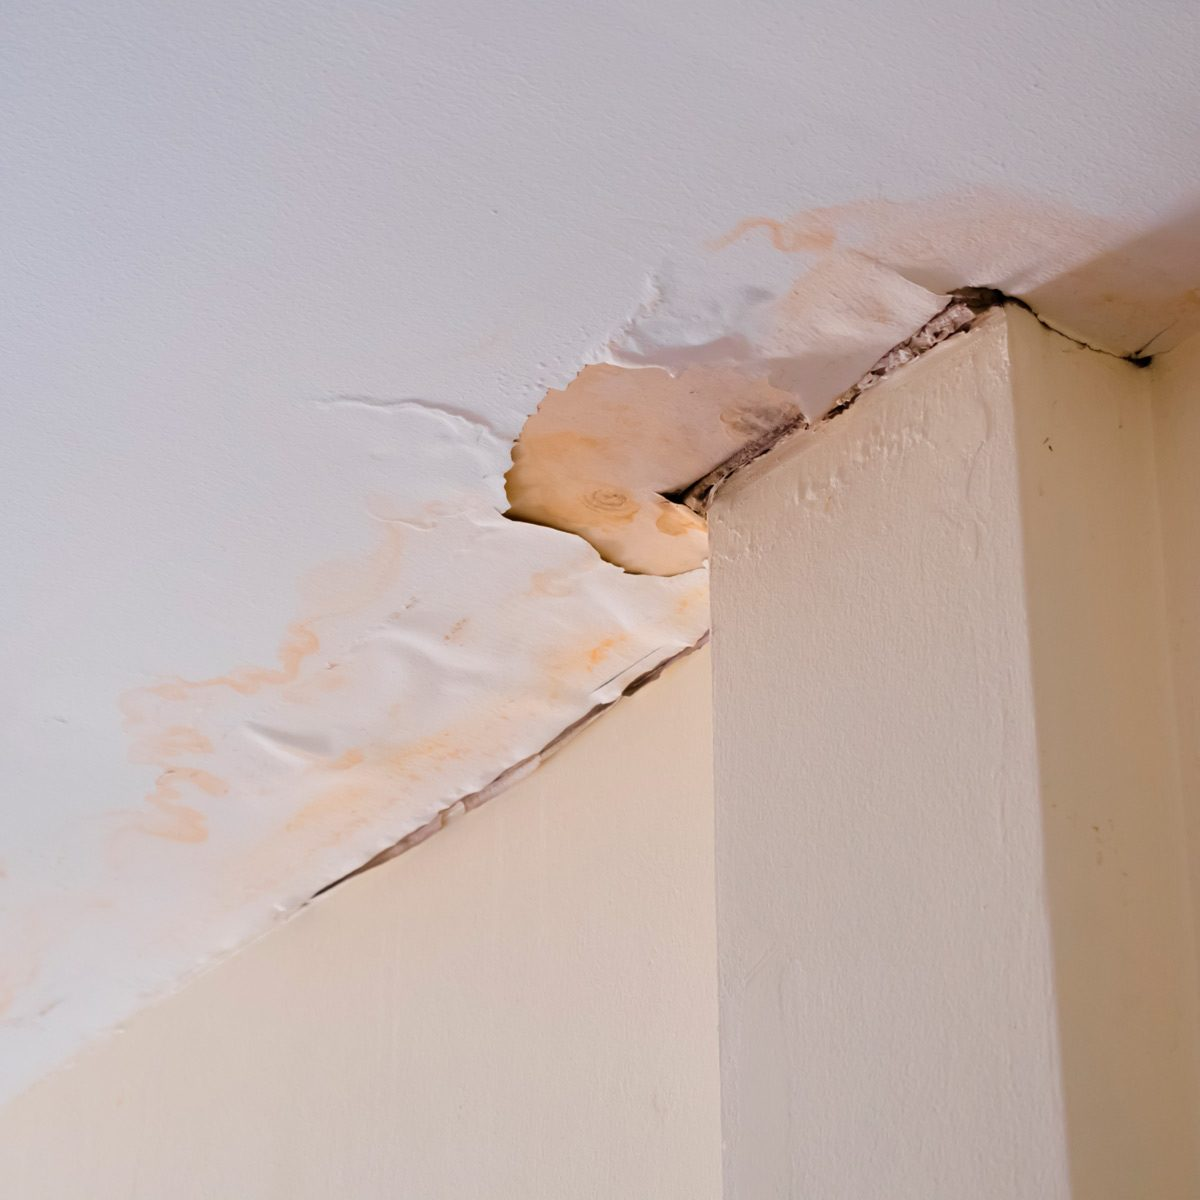 Ceiling Has Water Damage